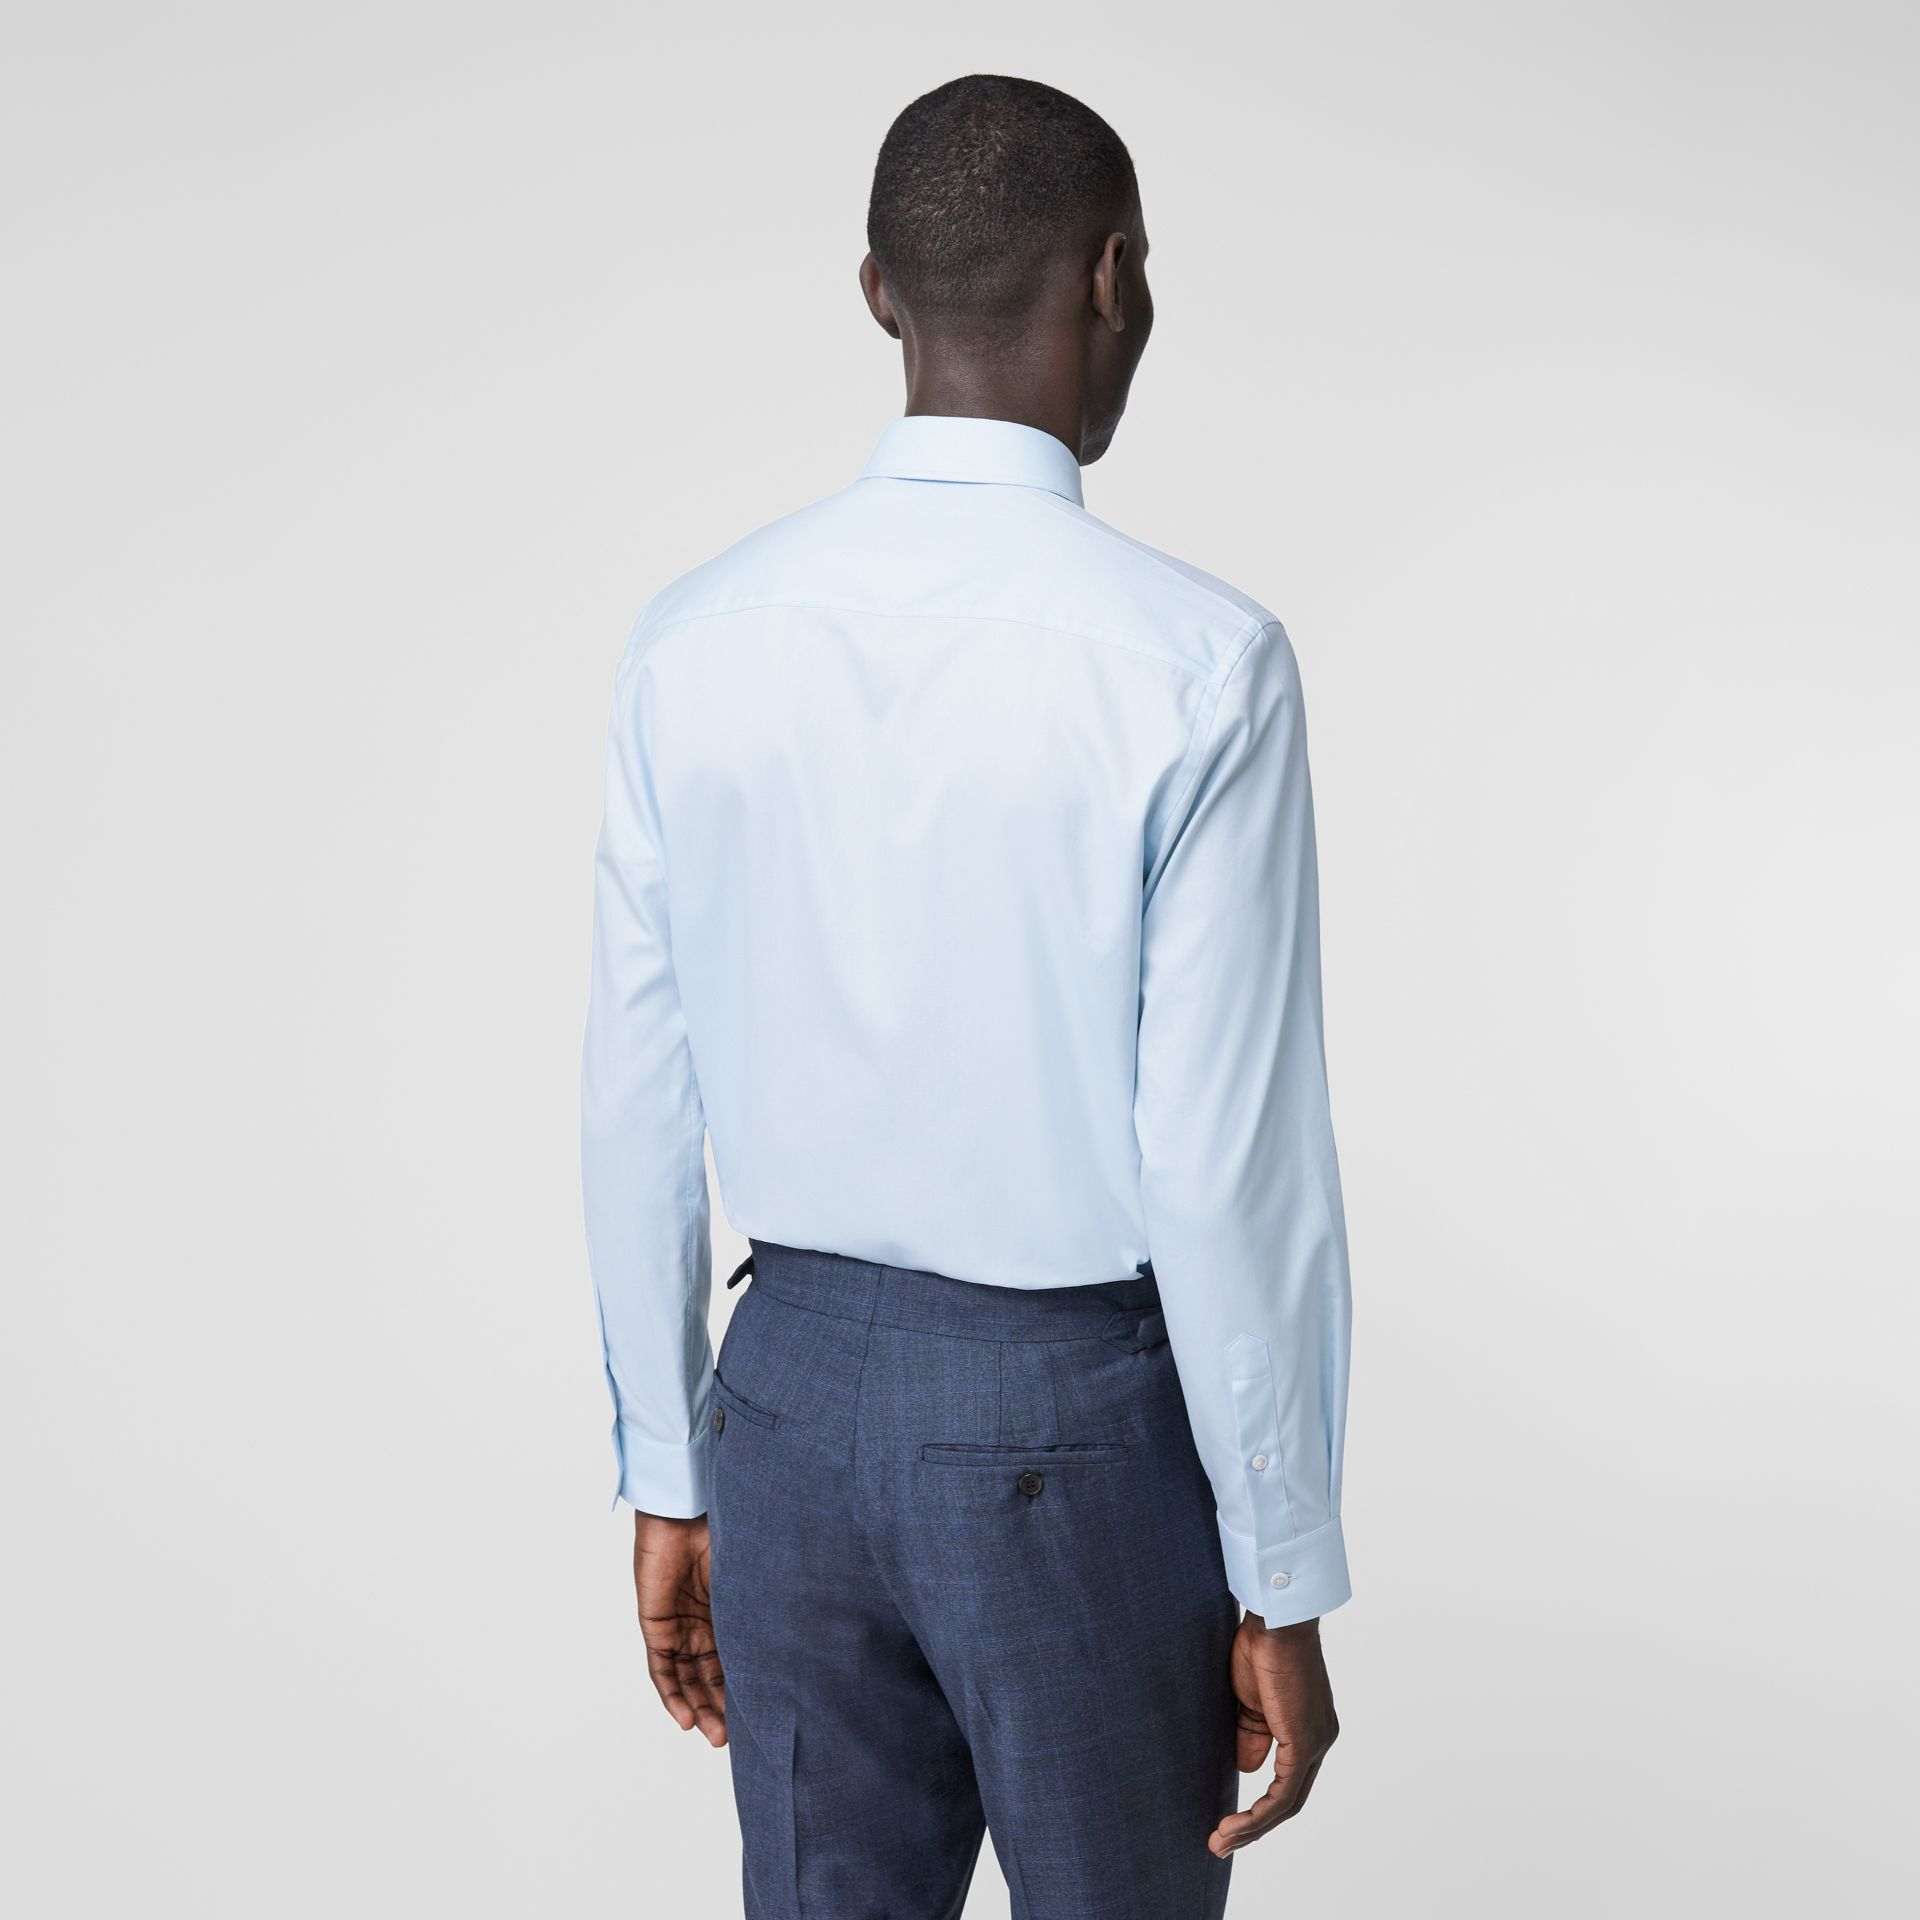 Classic Fit Monogram Motif Cotton Oxford Shirt in Pale Blue - Men | Burberry United Kingdom - gallery image 2